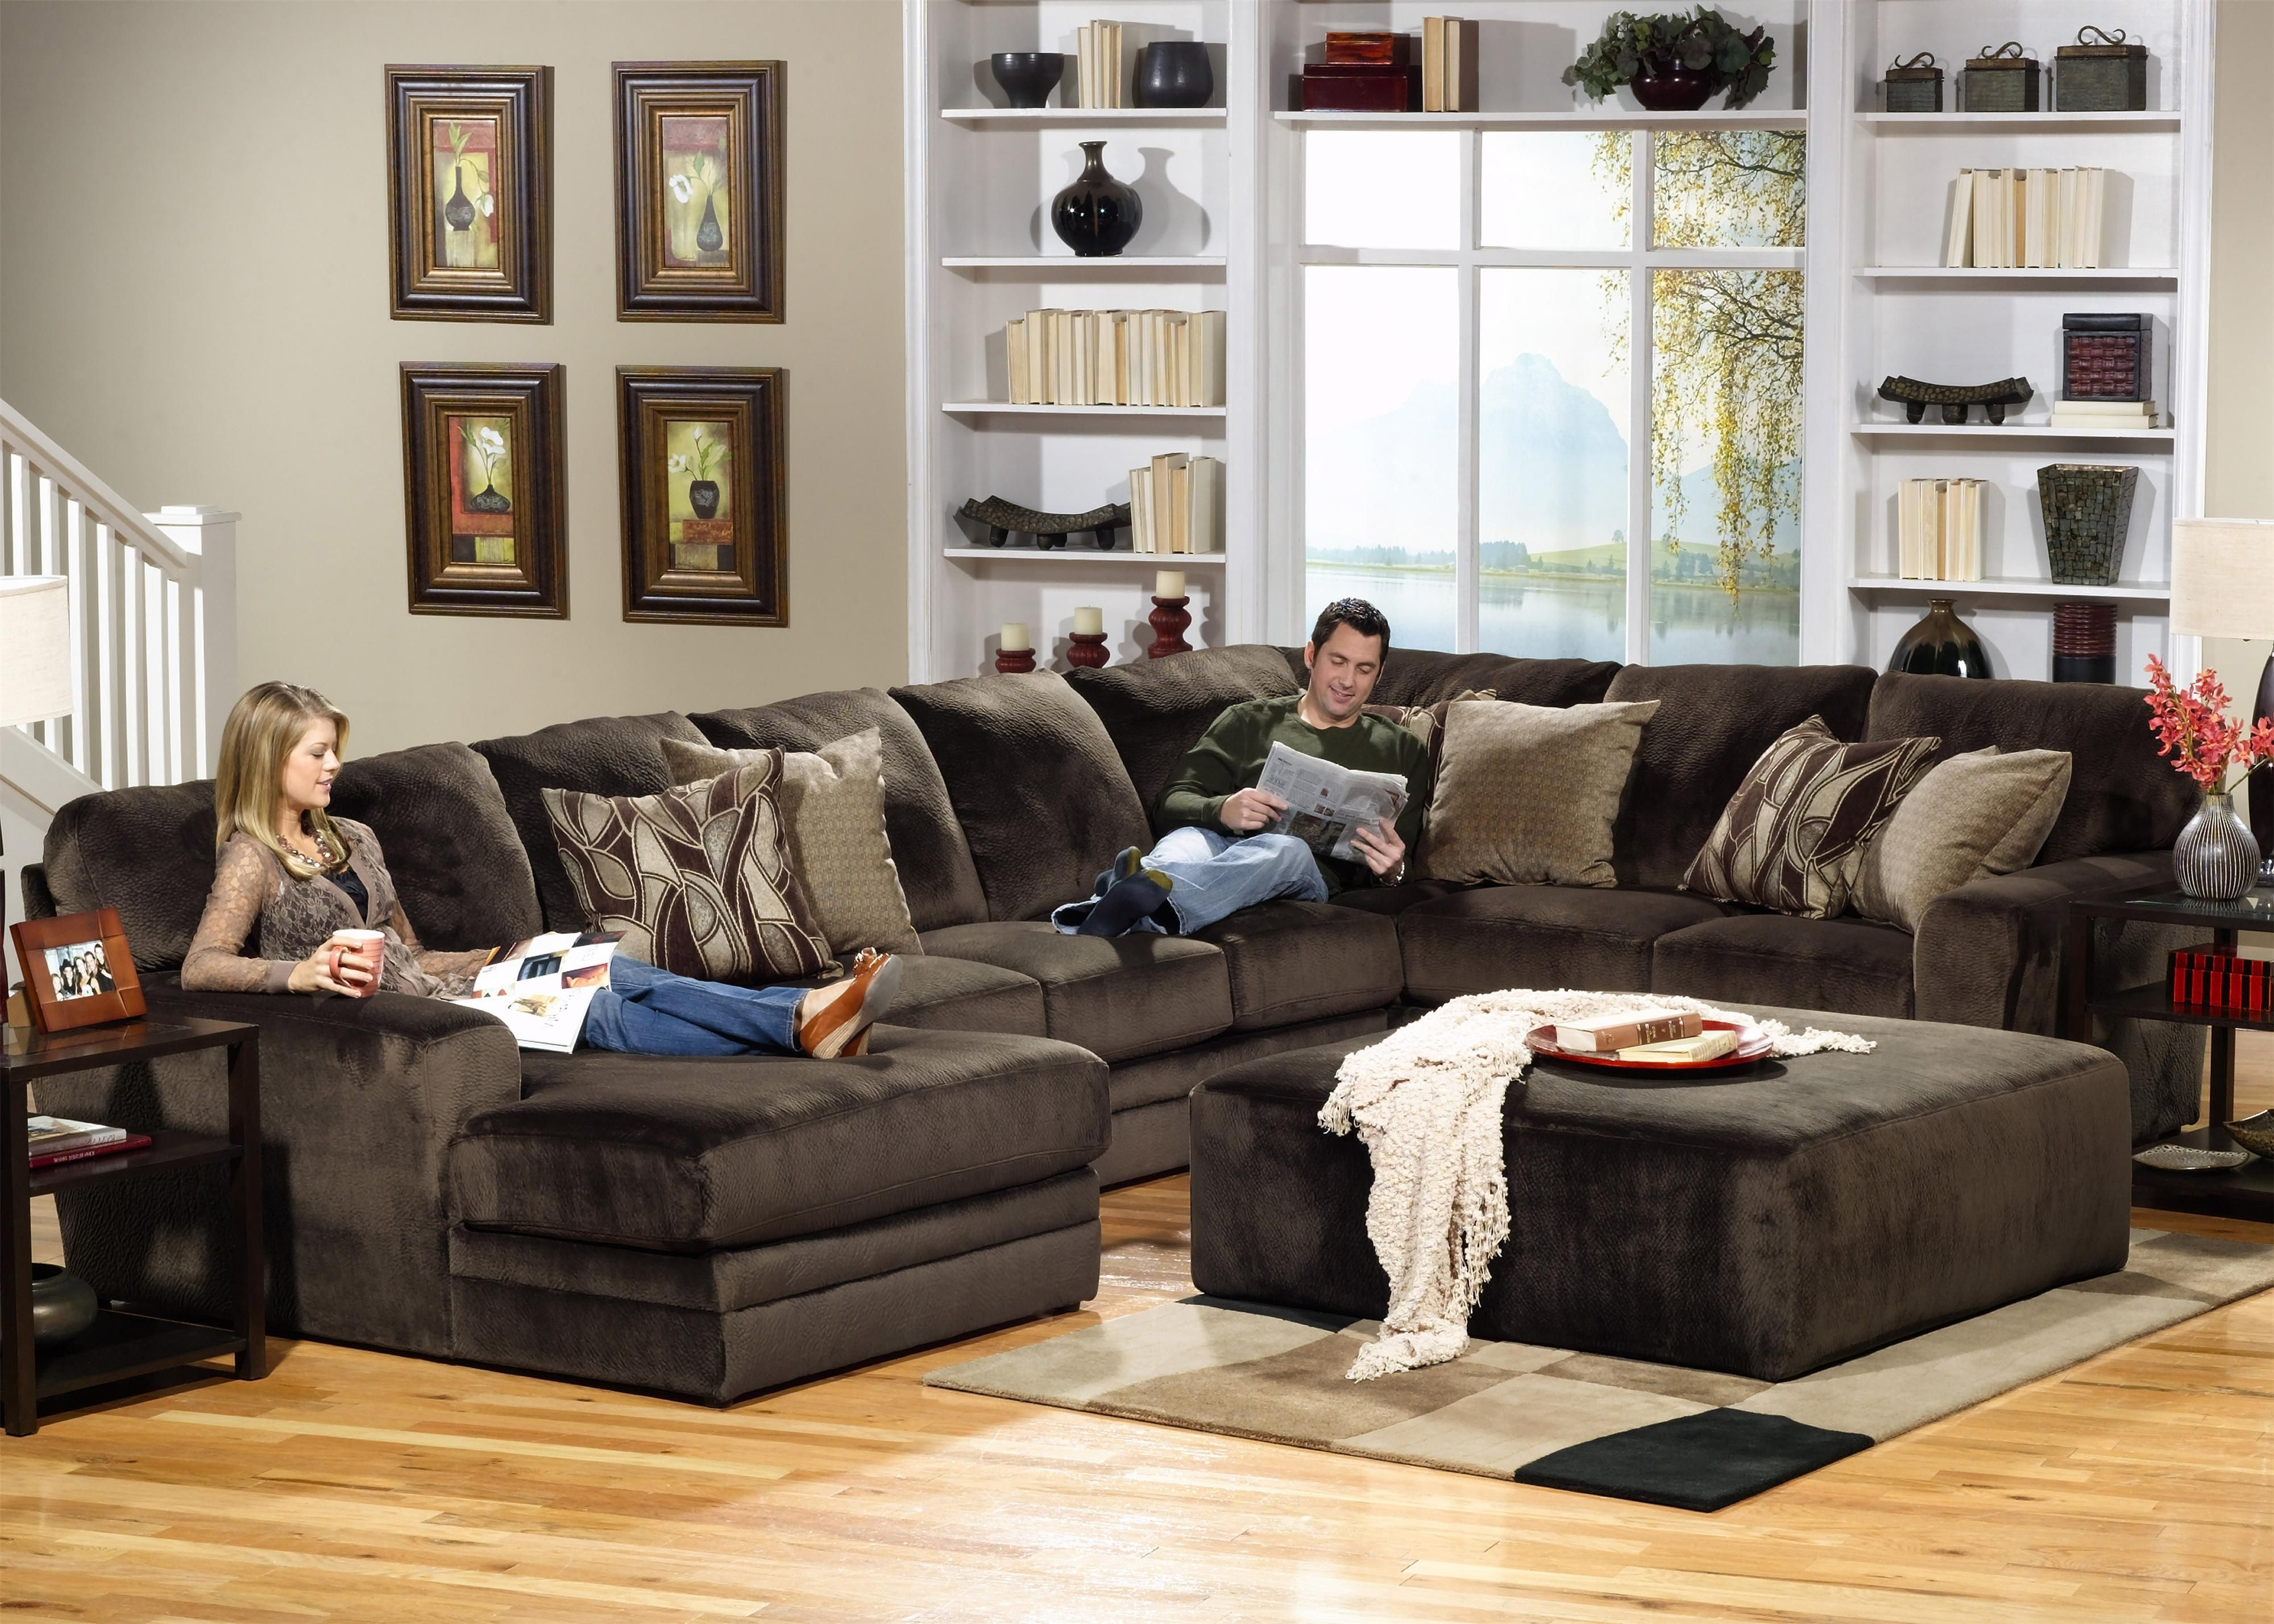 4377 Everest 3 Piece Sectional With Rsf Sectionjackson Furniture regarding Janesville Wi Sectional Sofas